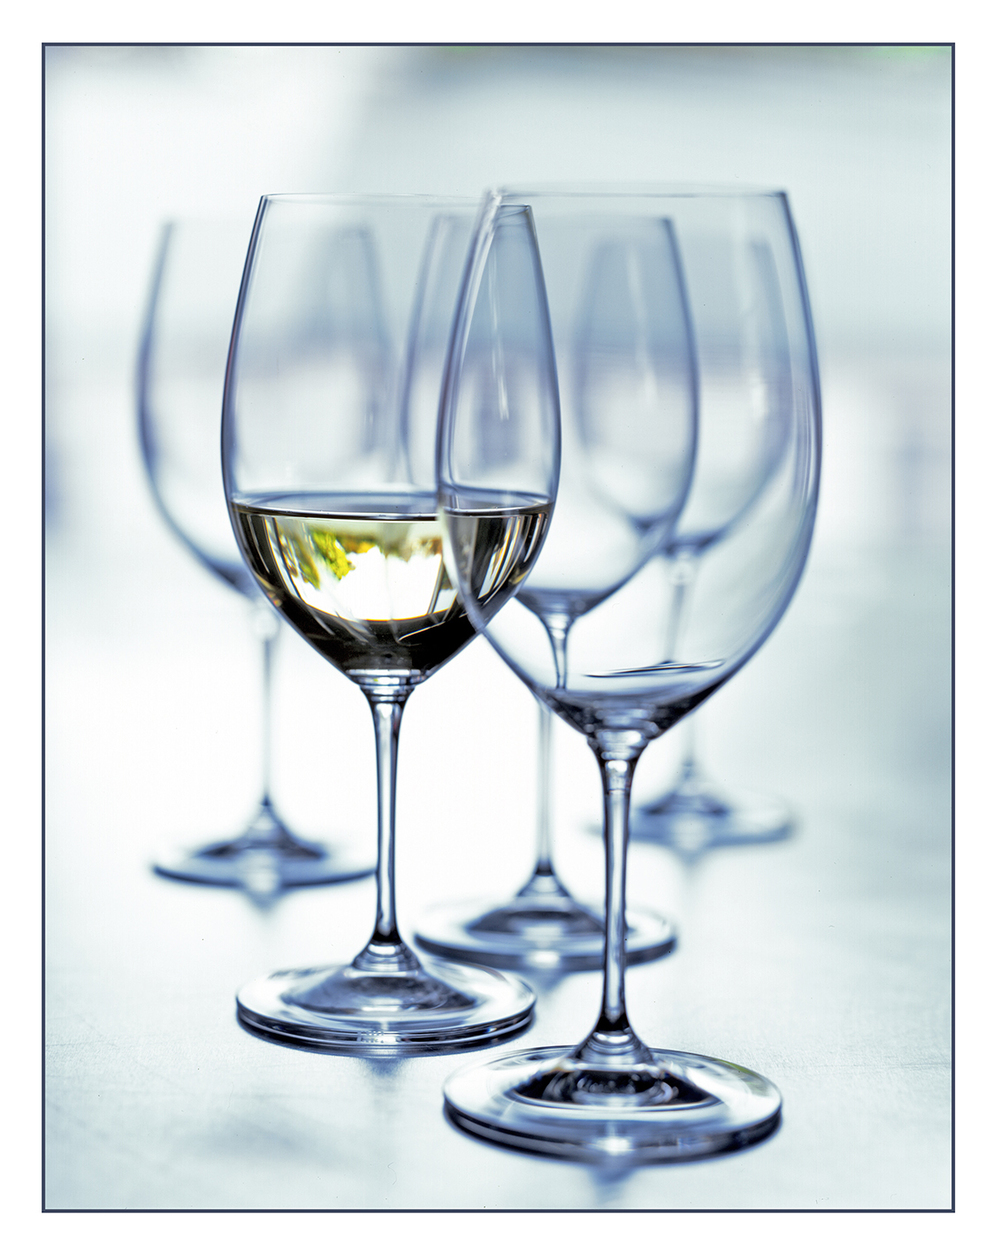 Wine-Glasses-Still-Life.jpg